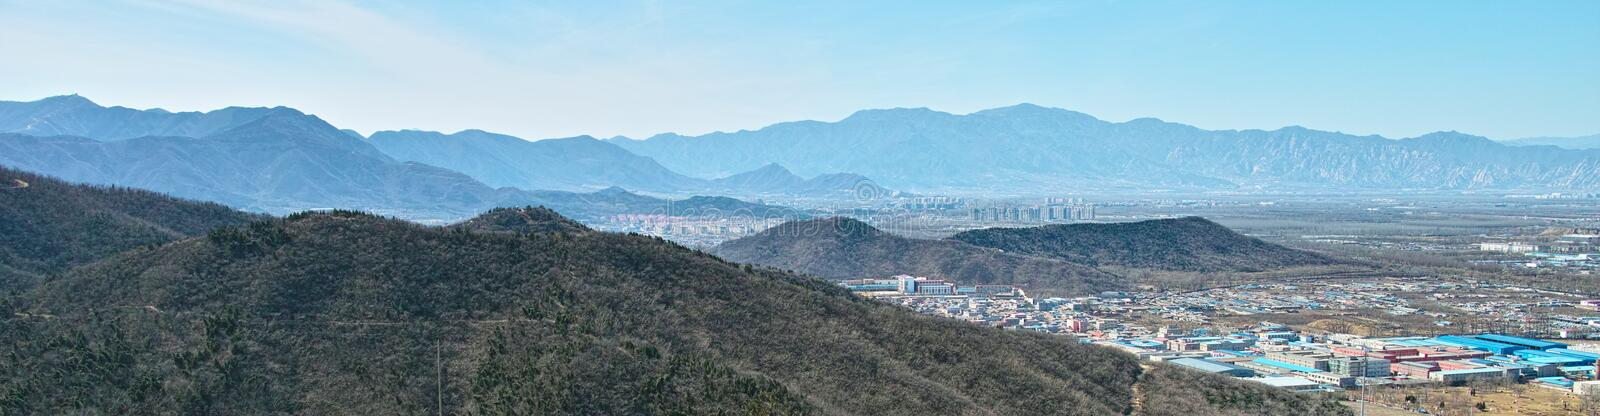 Download The Town And Mountains From Beijing Baiwangshan Peak Editorial Stock Photo - Image: 30938033